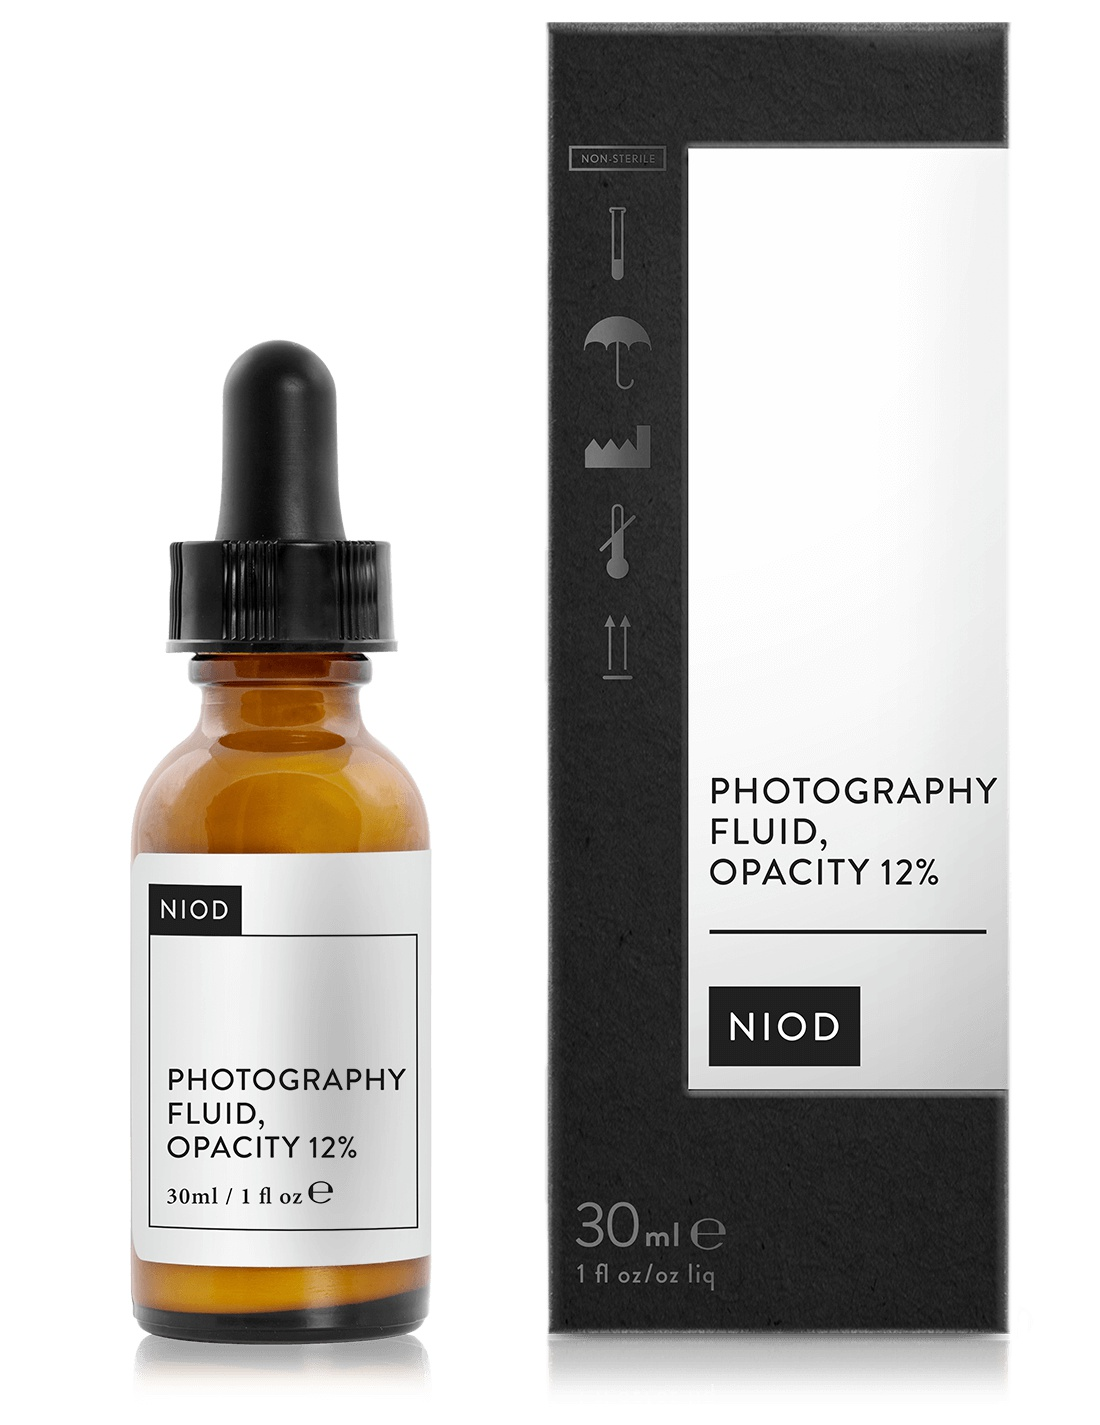 NIOD Photography Fluid